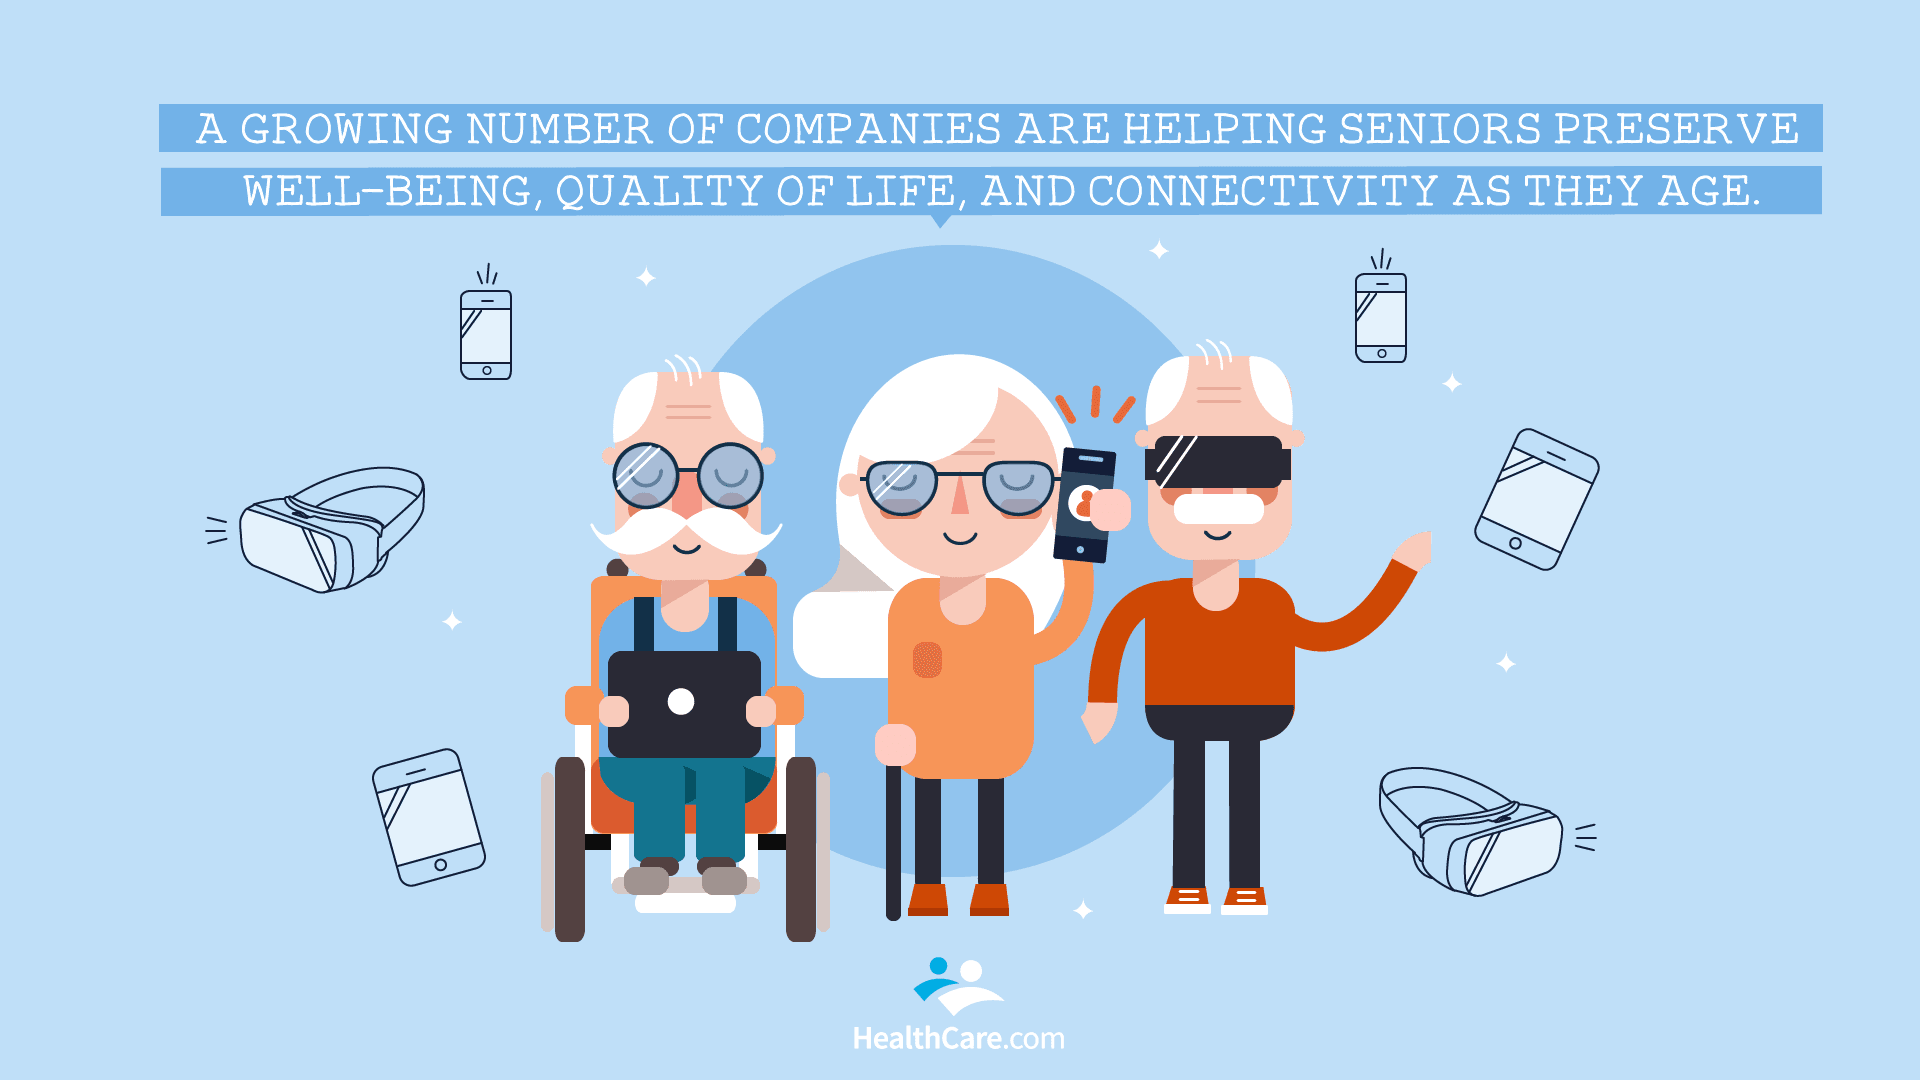 Senior Care Startups Illustration | The CheckUp by HealthCare.com